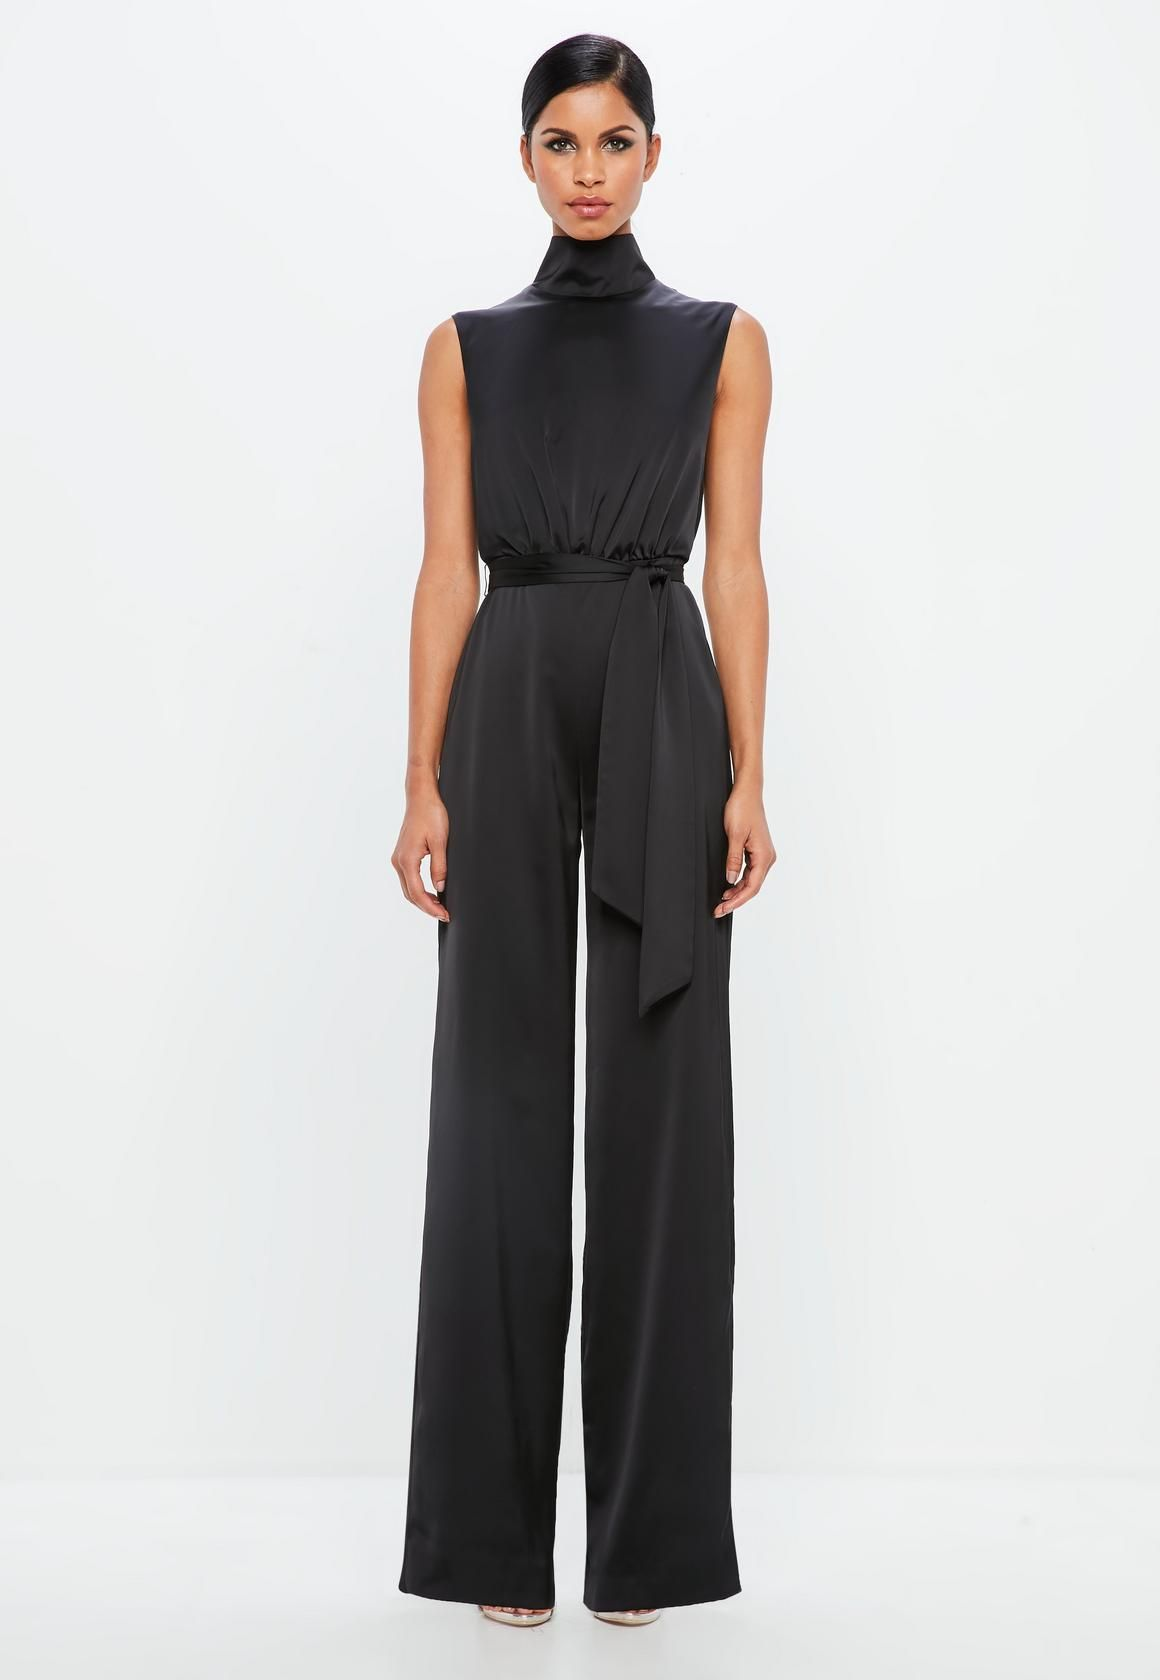 Missguided Peace Love Black Satin High Neck Belted Jumpsuit Black Overall Dress Overall Dress Dresses [ 1680 x 1160 Pixel ]